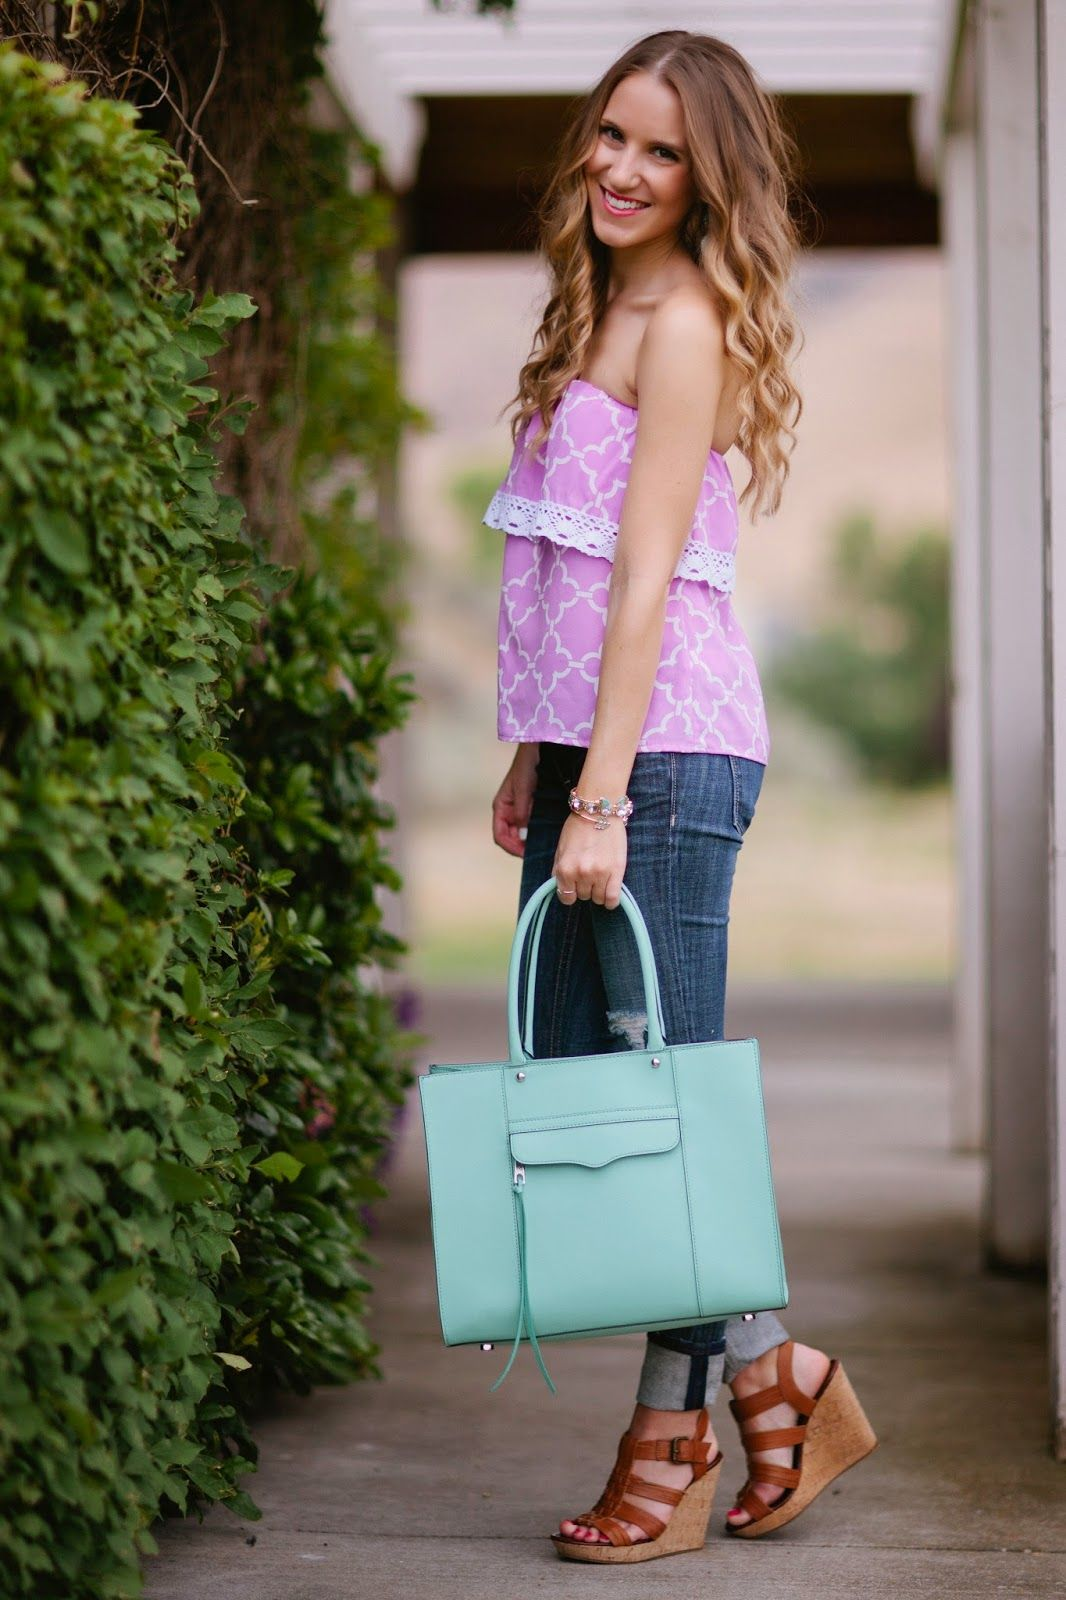 Lavender Strapless Top and Jeans - Twenties Girl Style